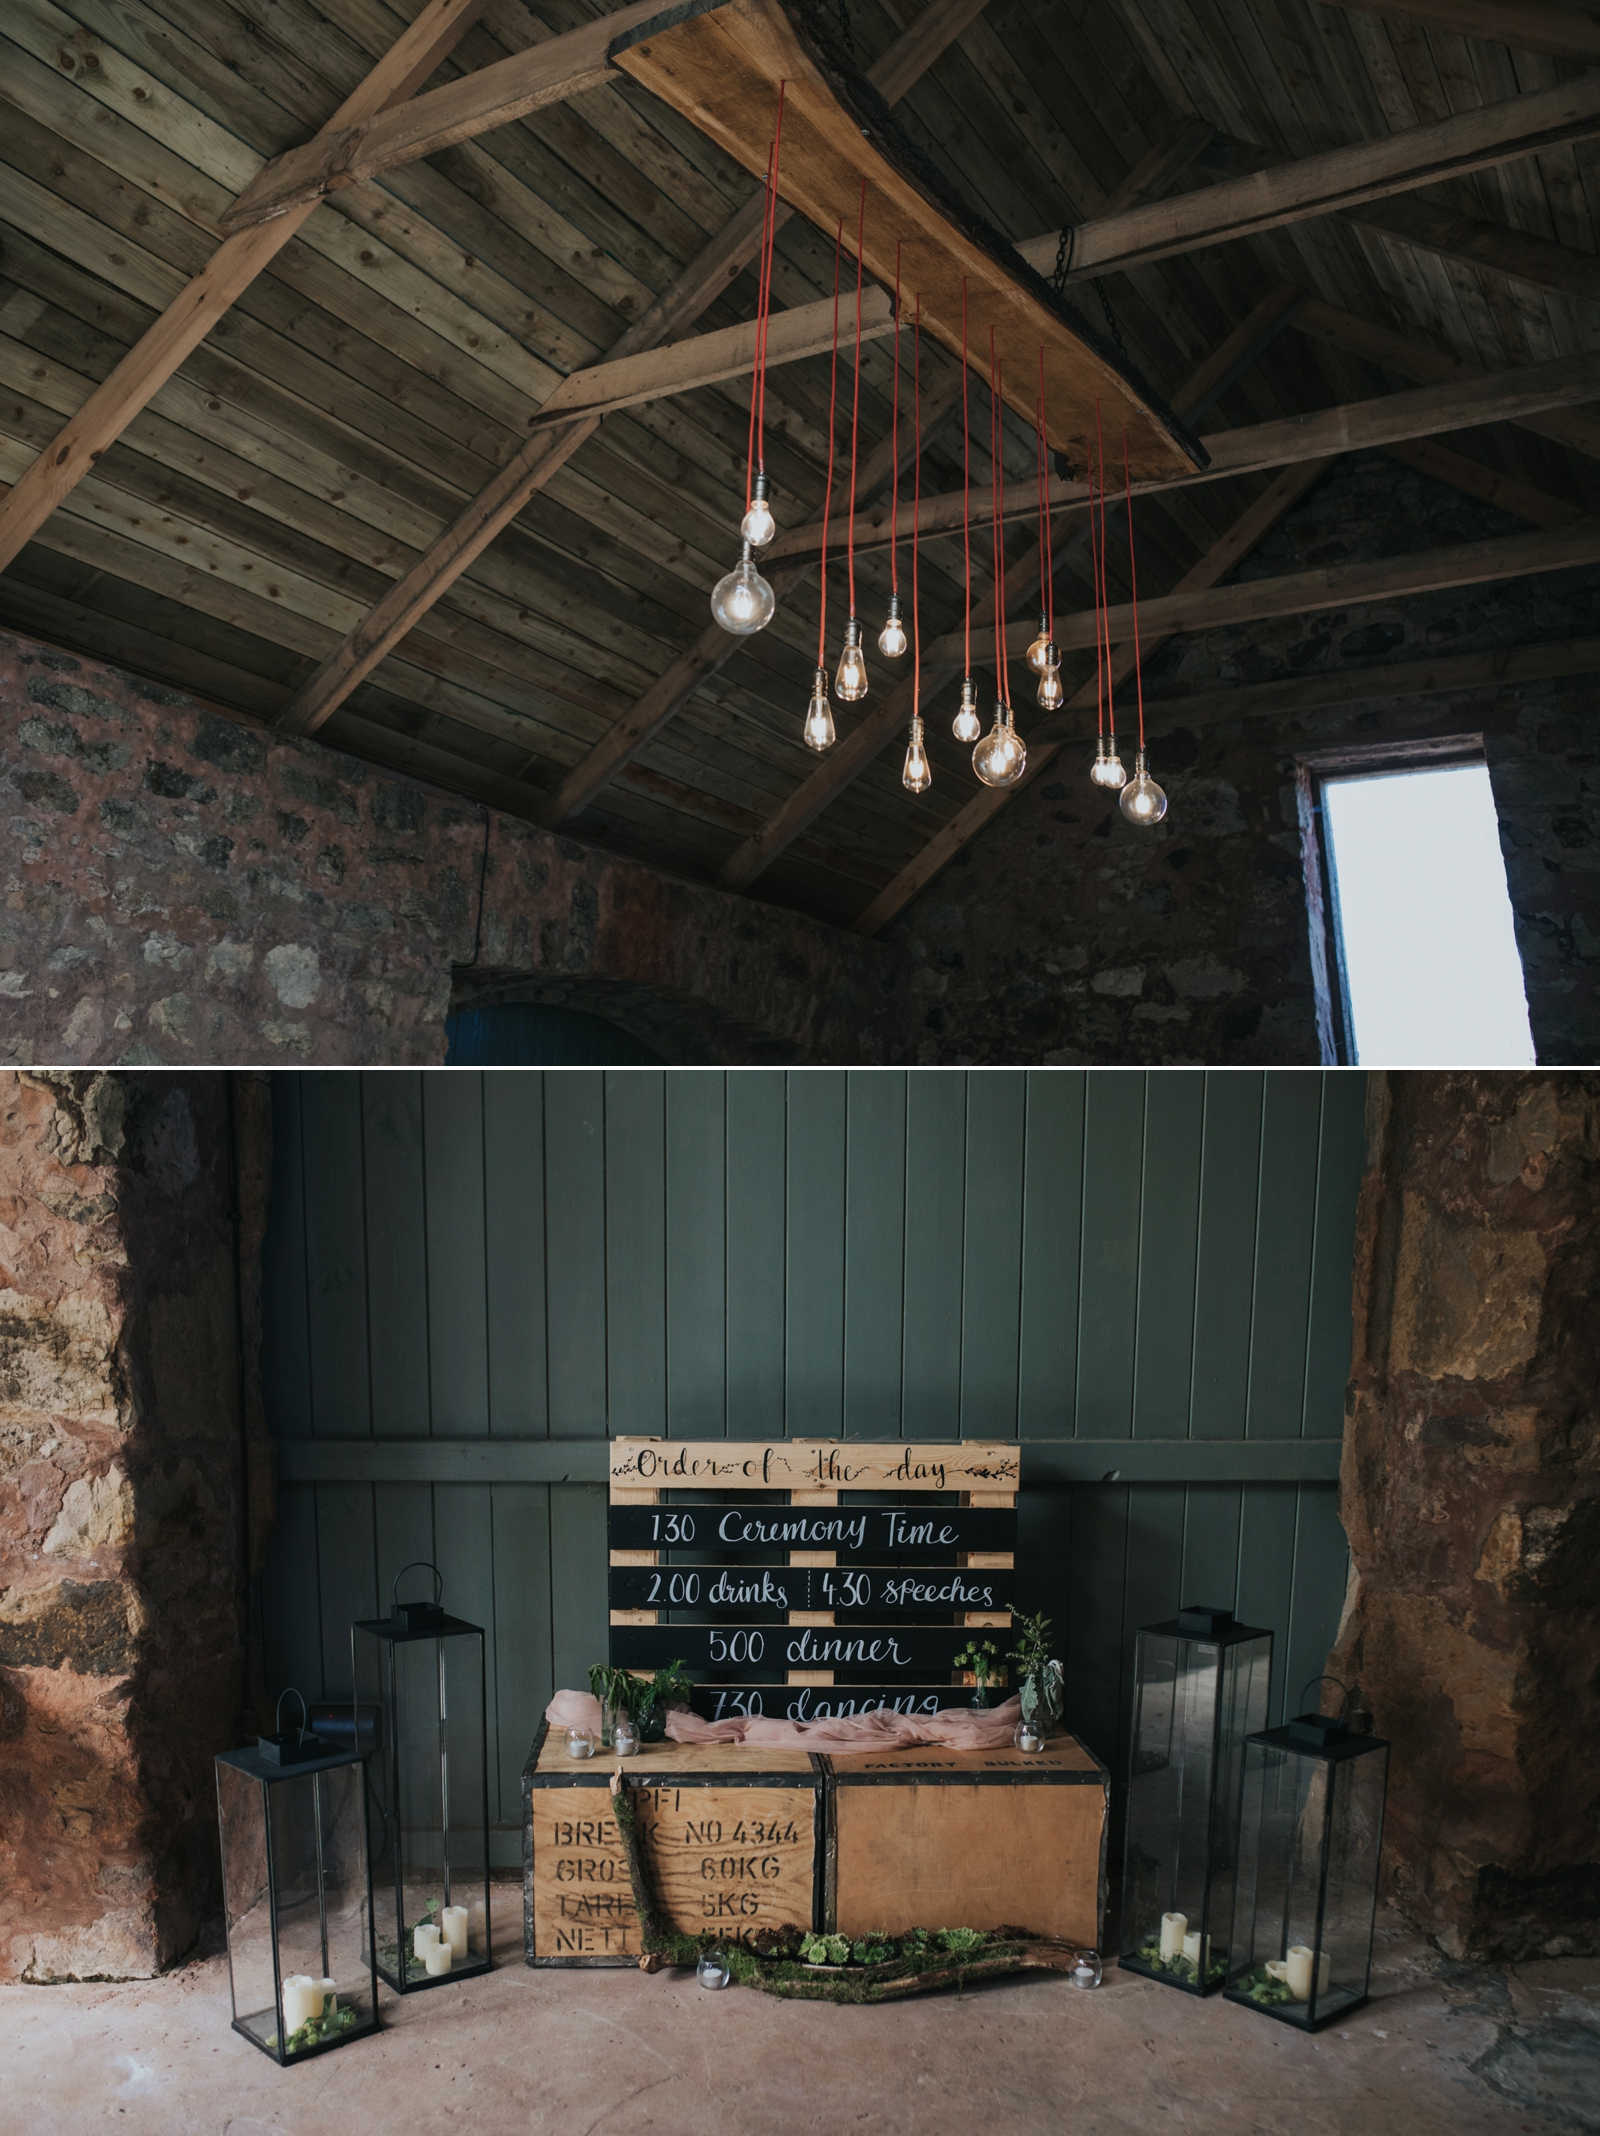 cow-shed-crail-rustic-wedding-gemma-andy-loraine-ross-photographygemma-andy-wedding-0079.jpg